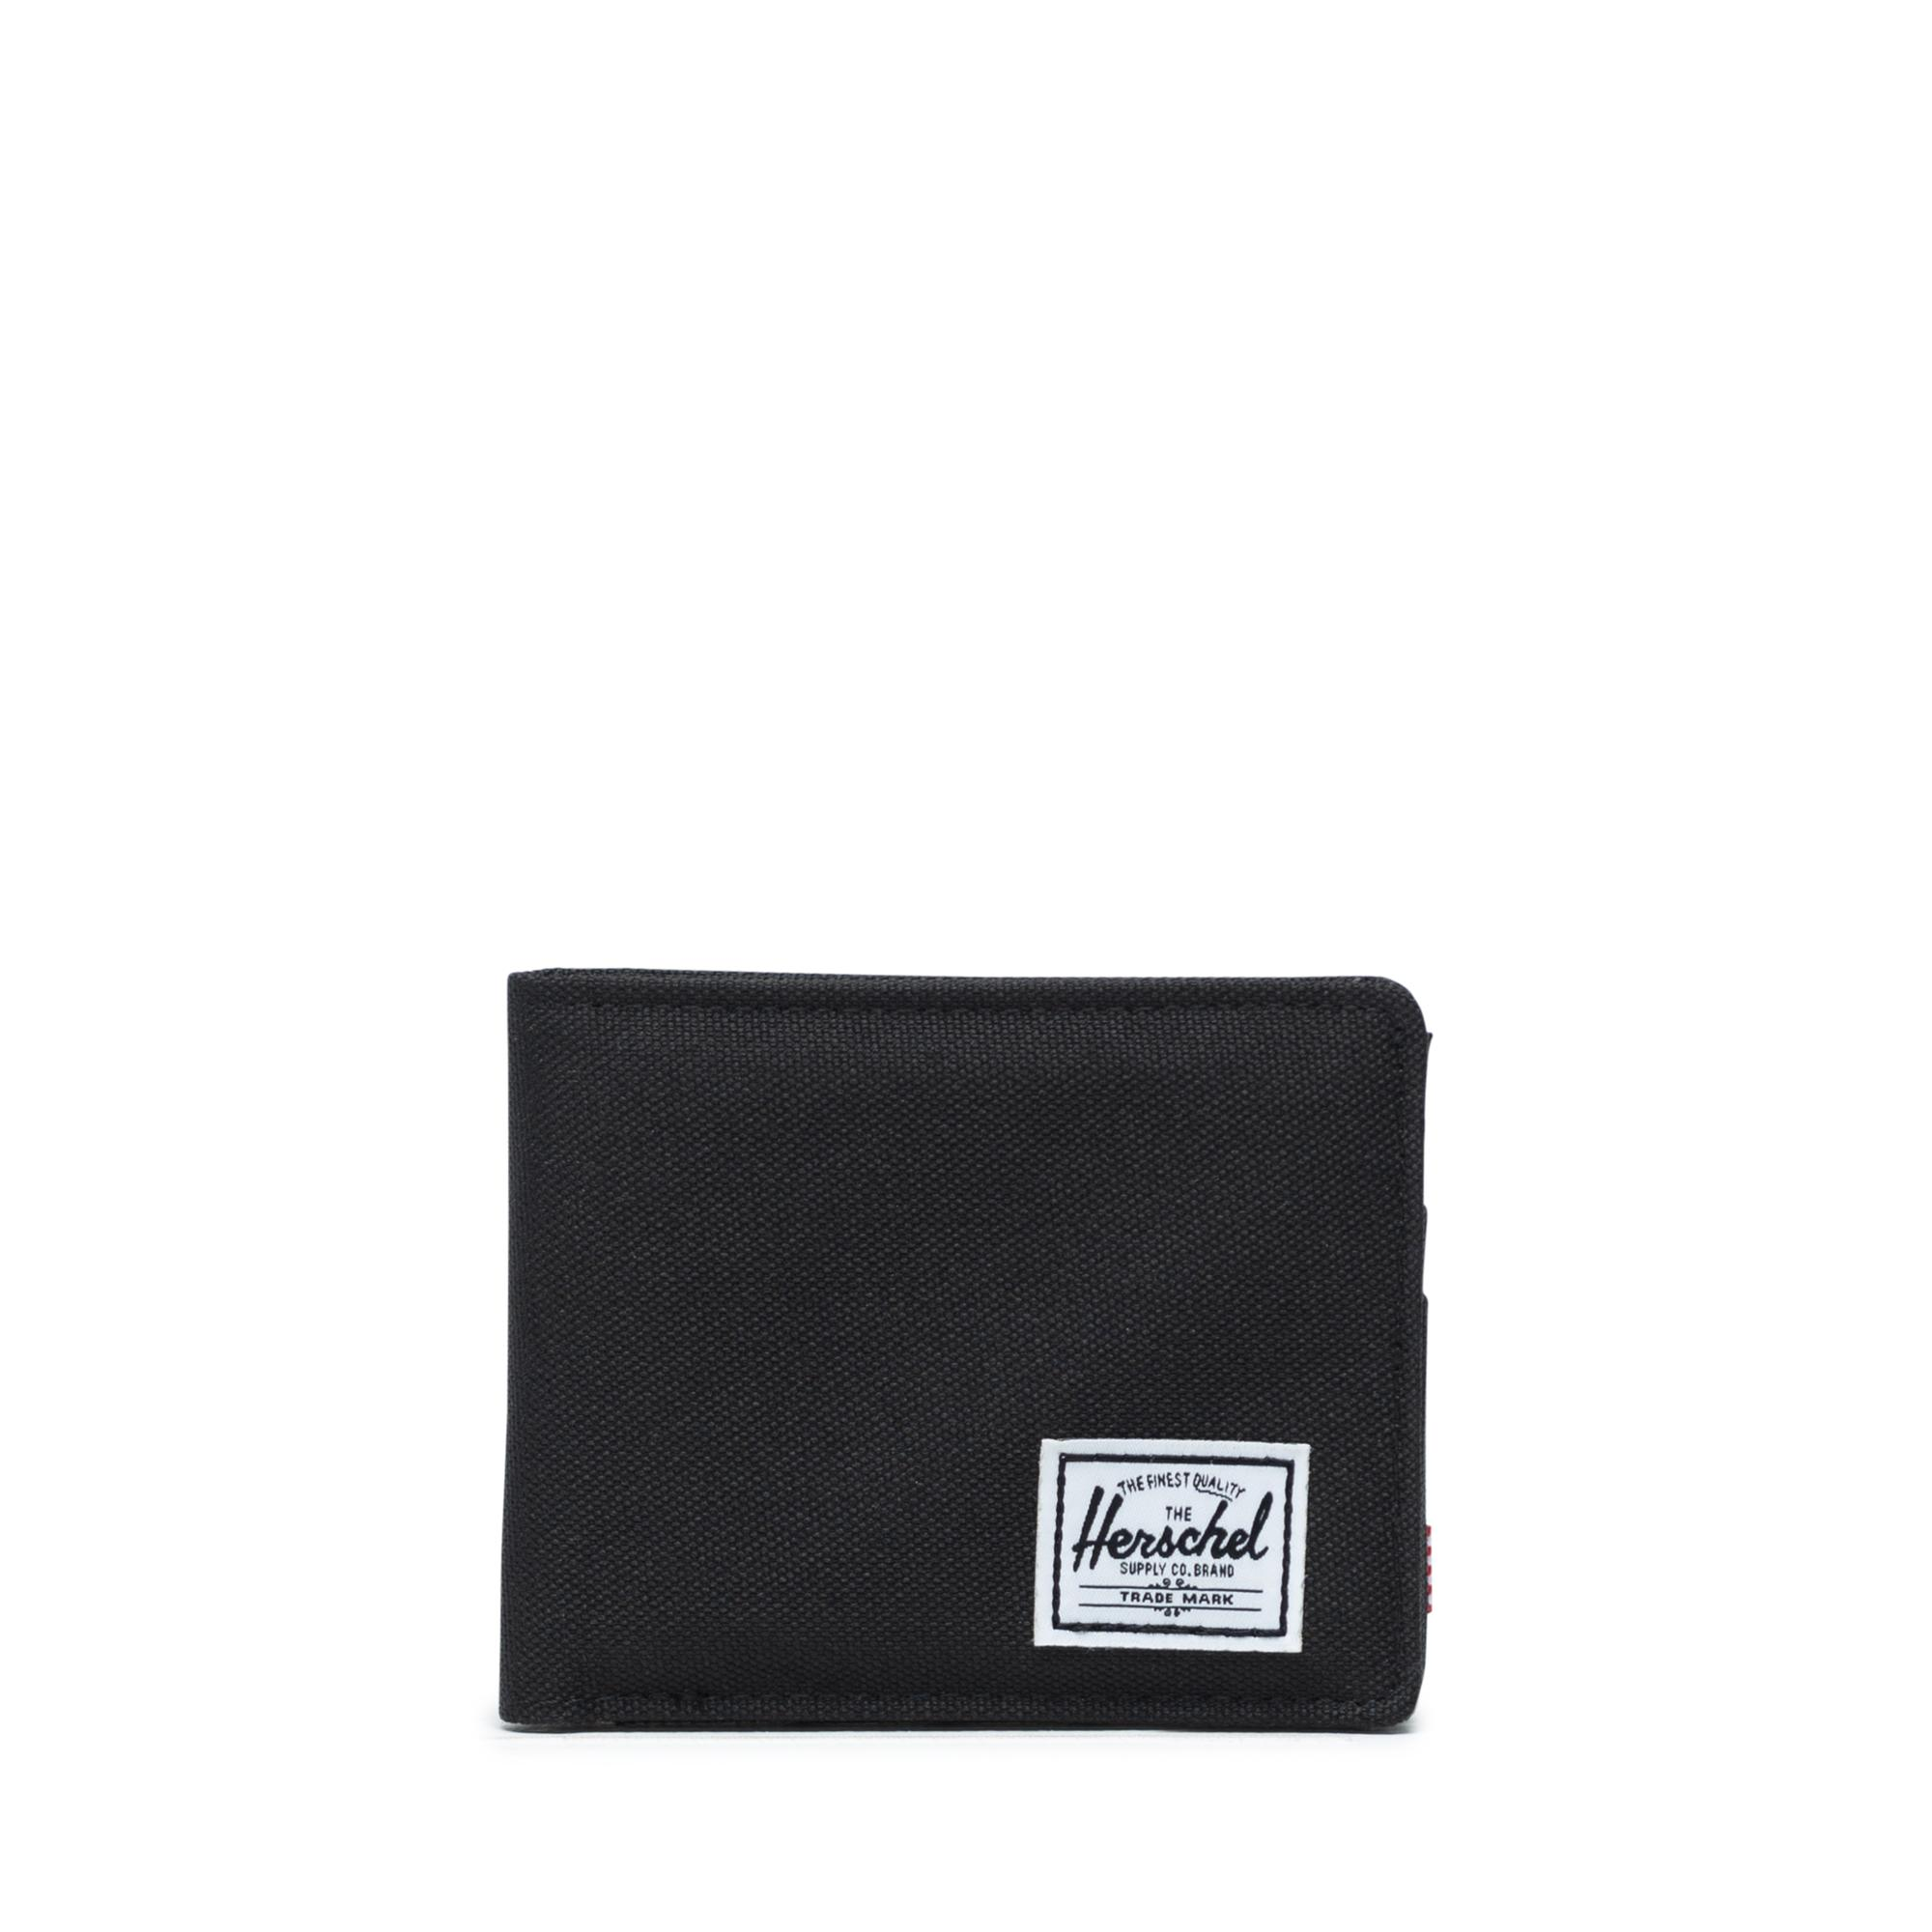 6ad91f98be512 Roy Wallet   Herschel Supply Company